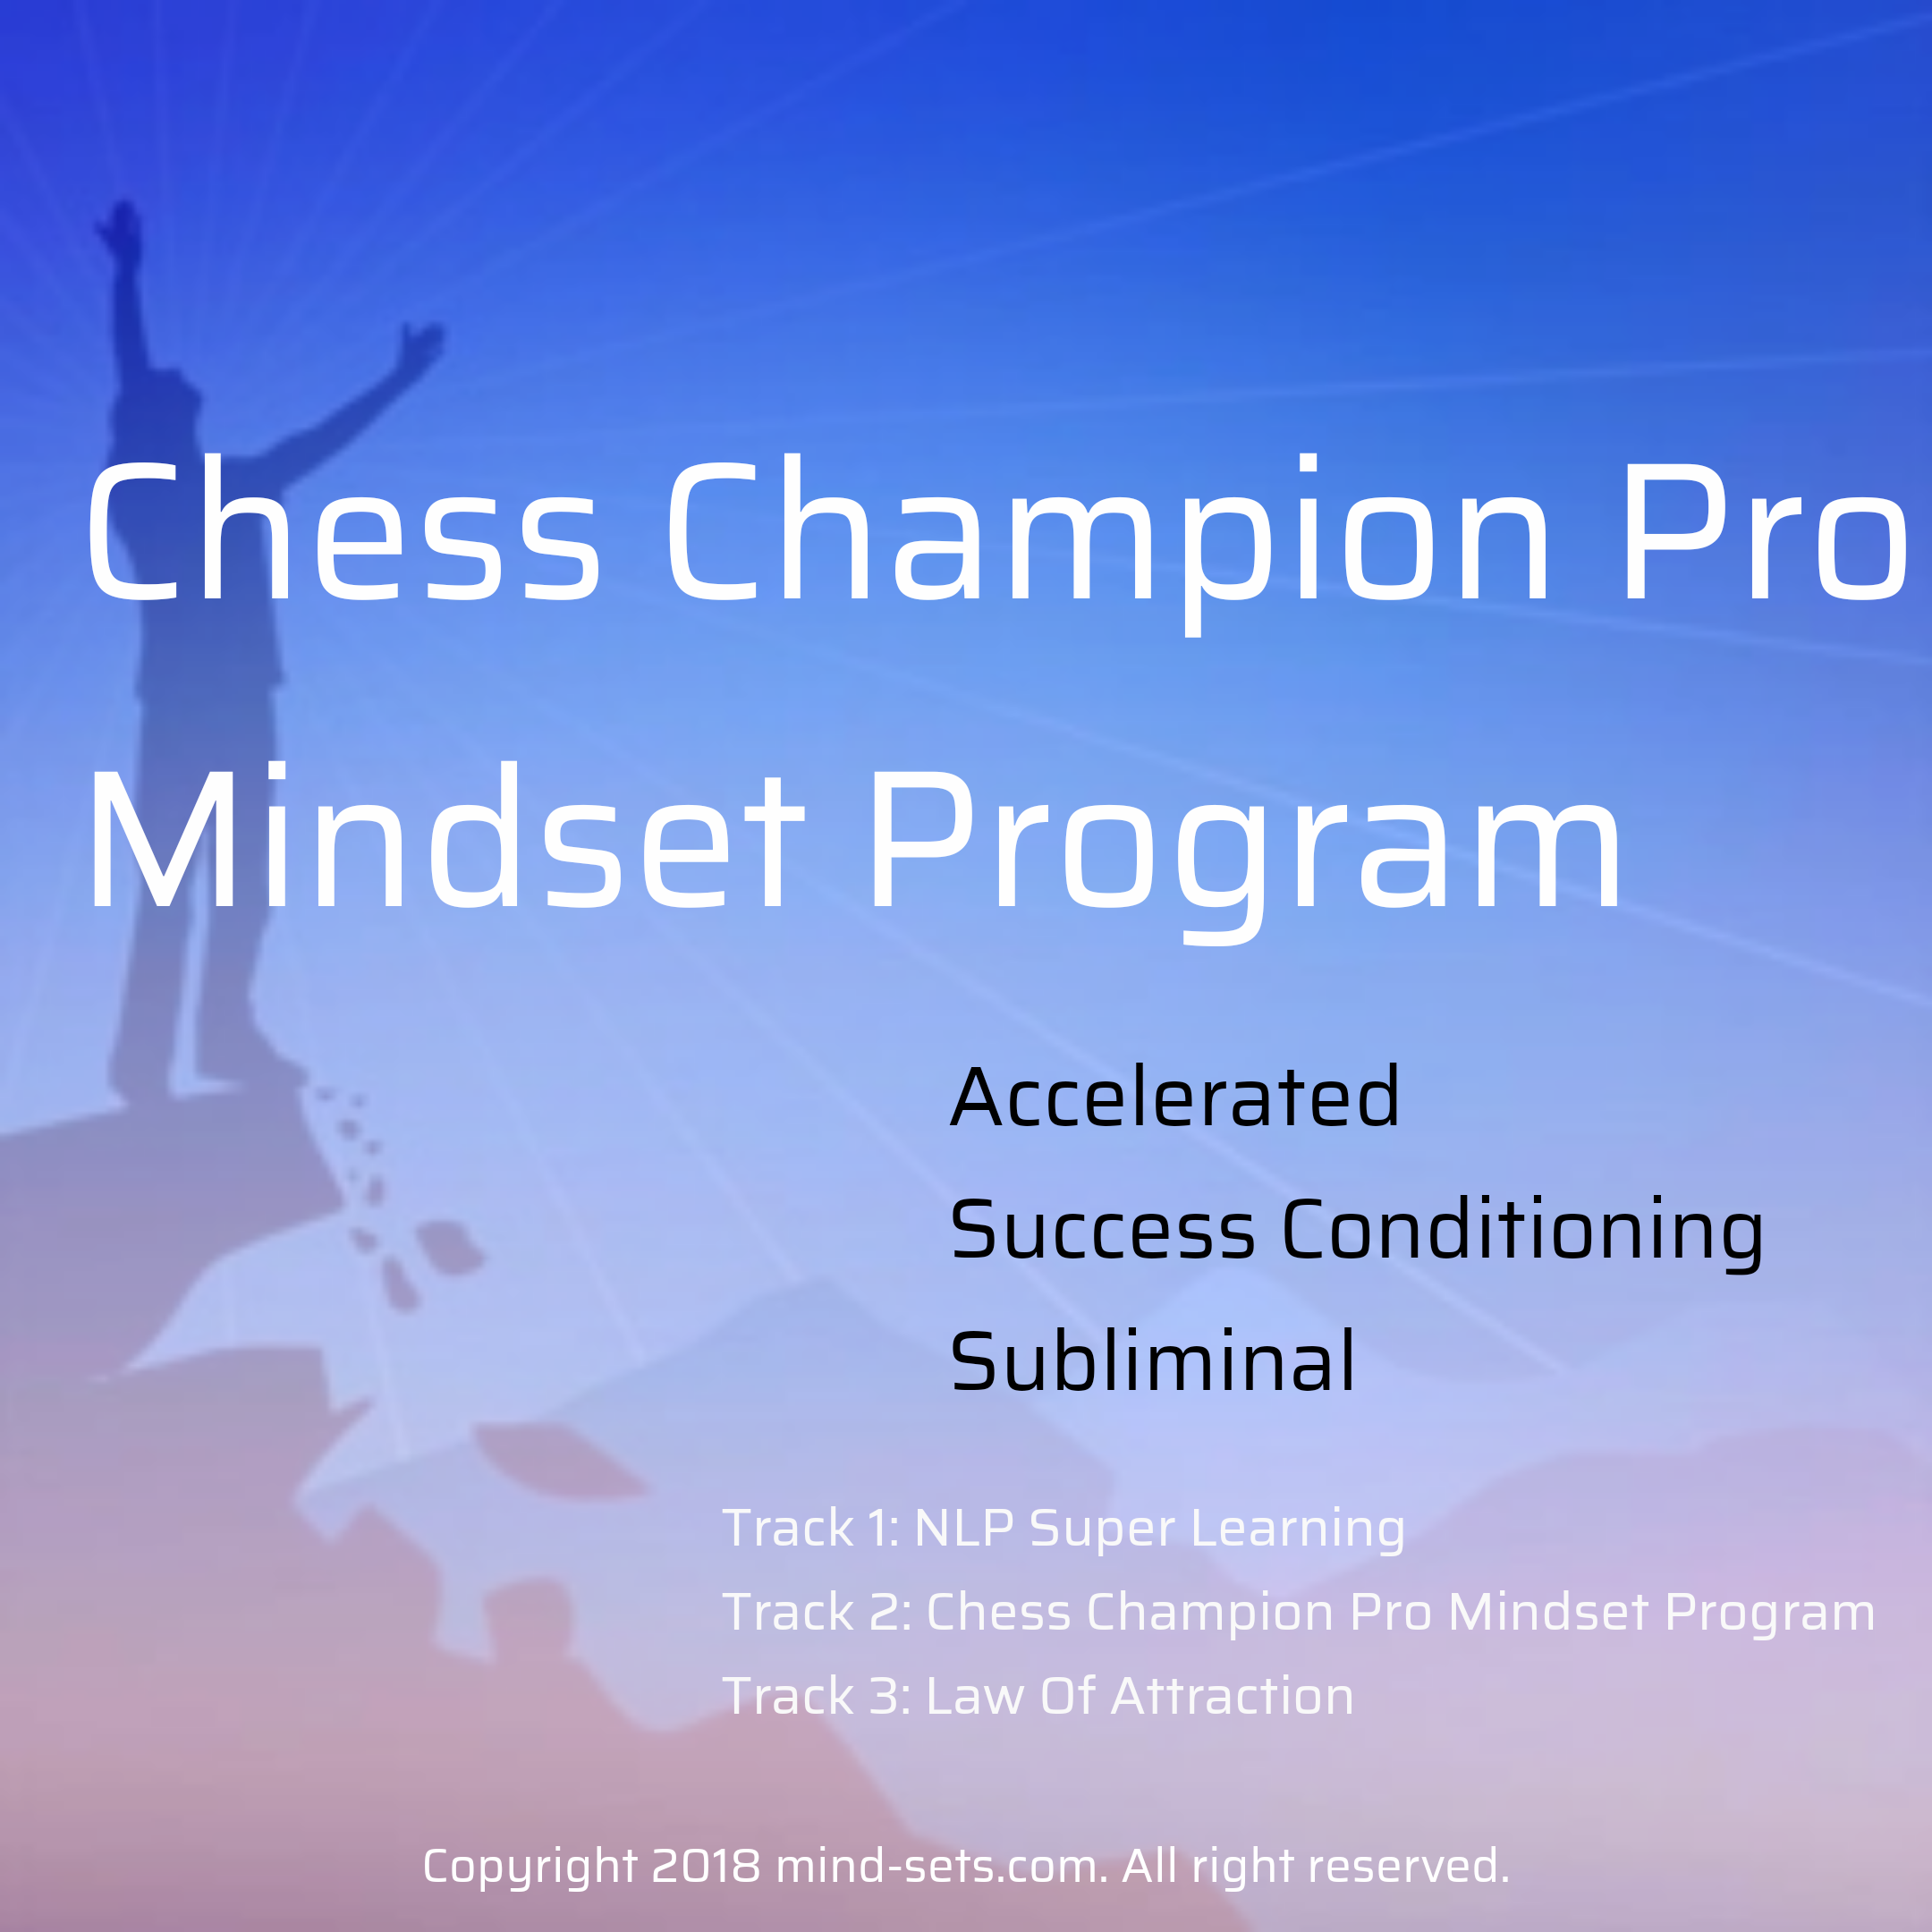 Chess Champion Pro Mindset Program